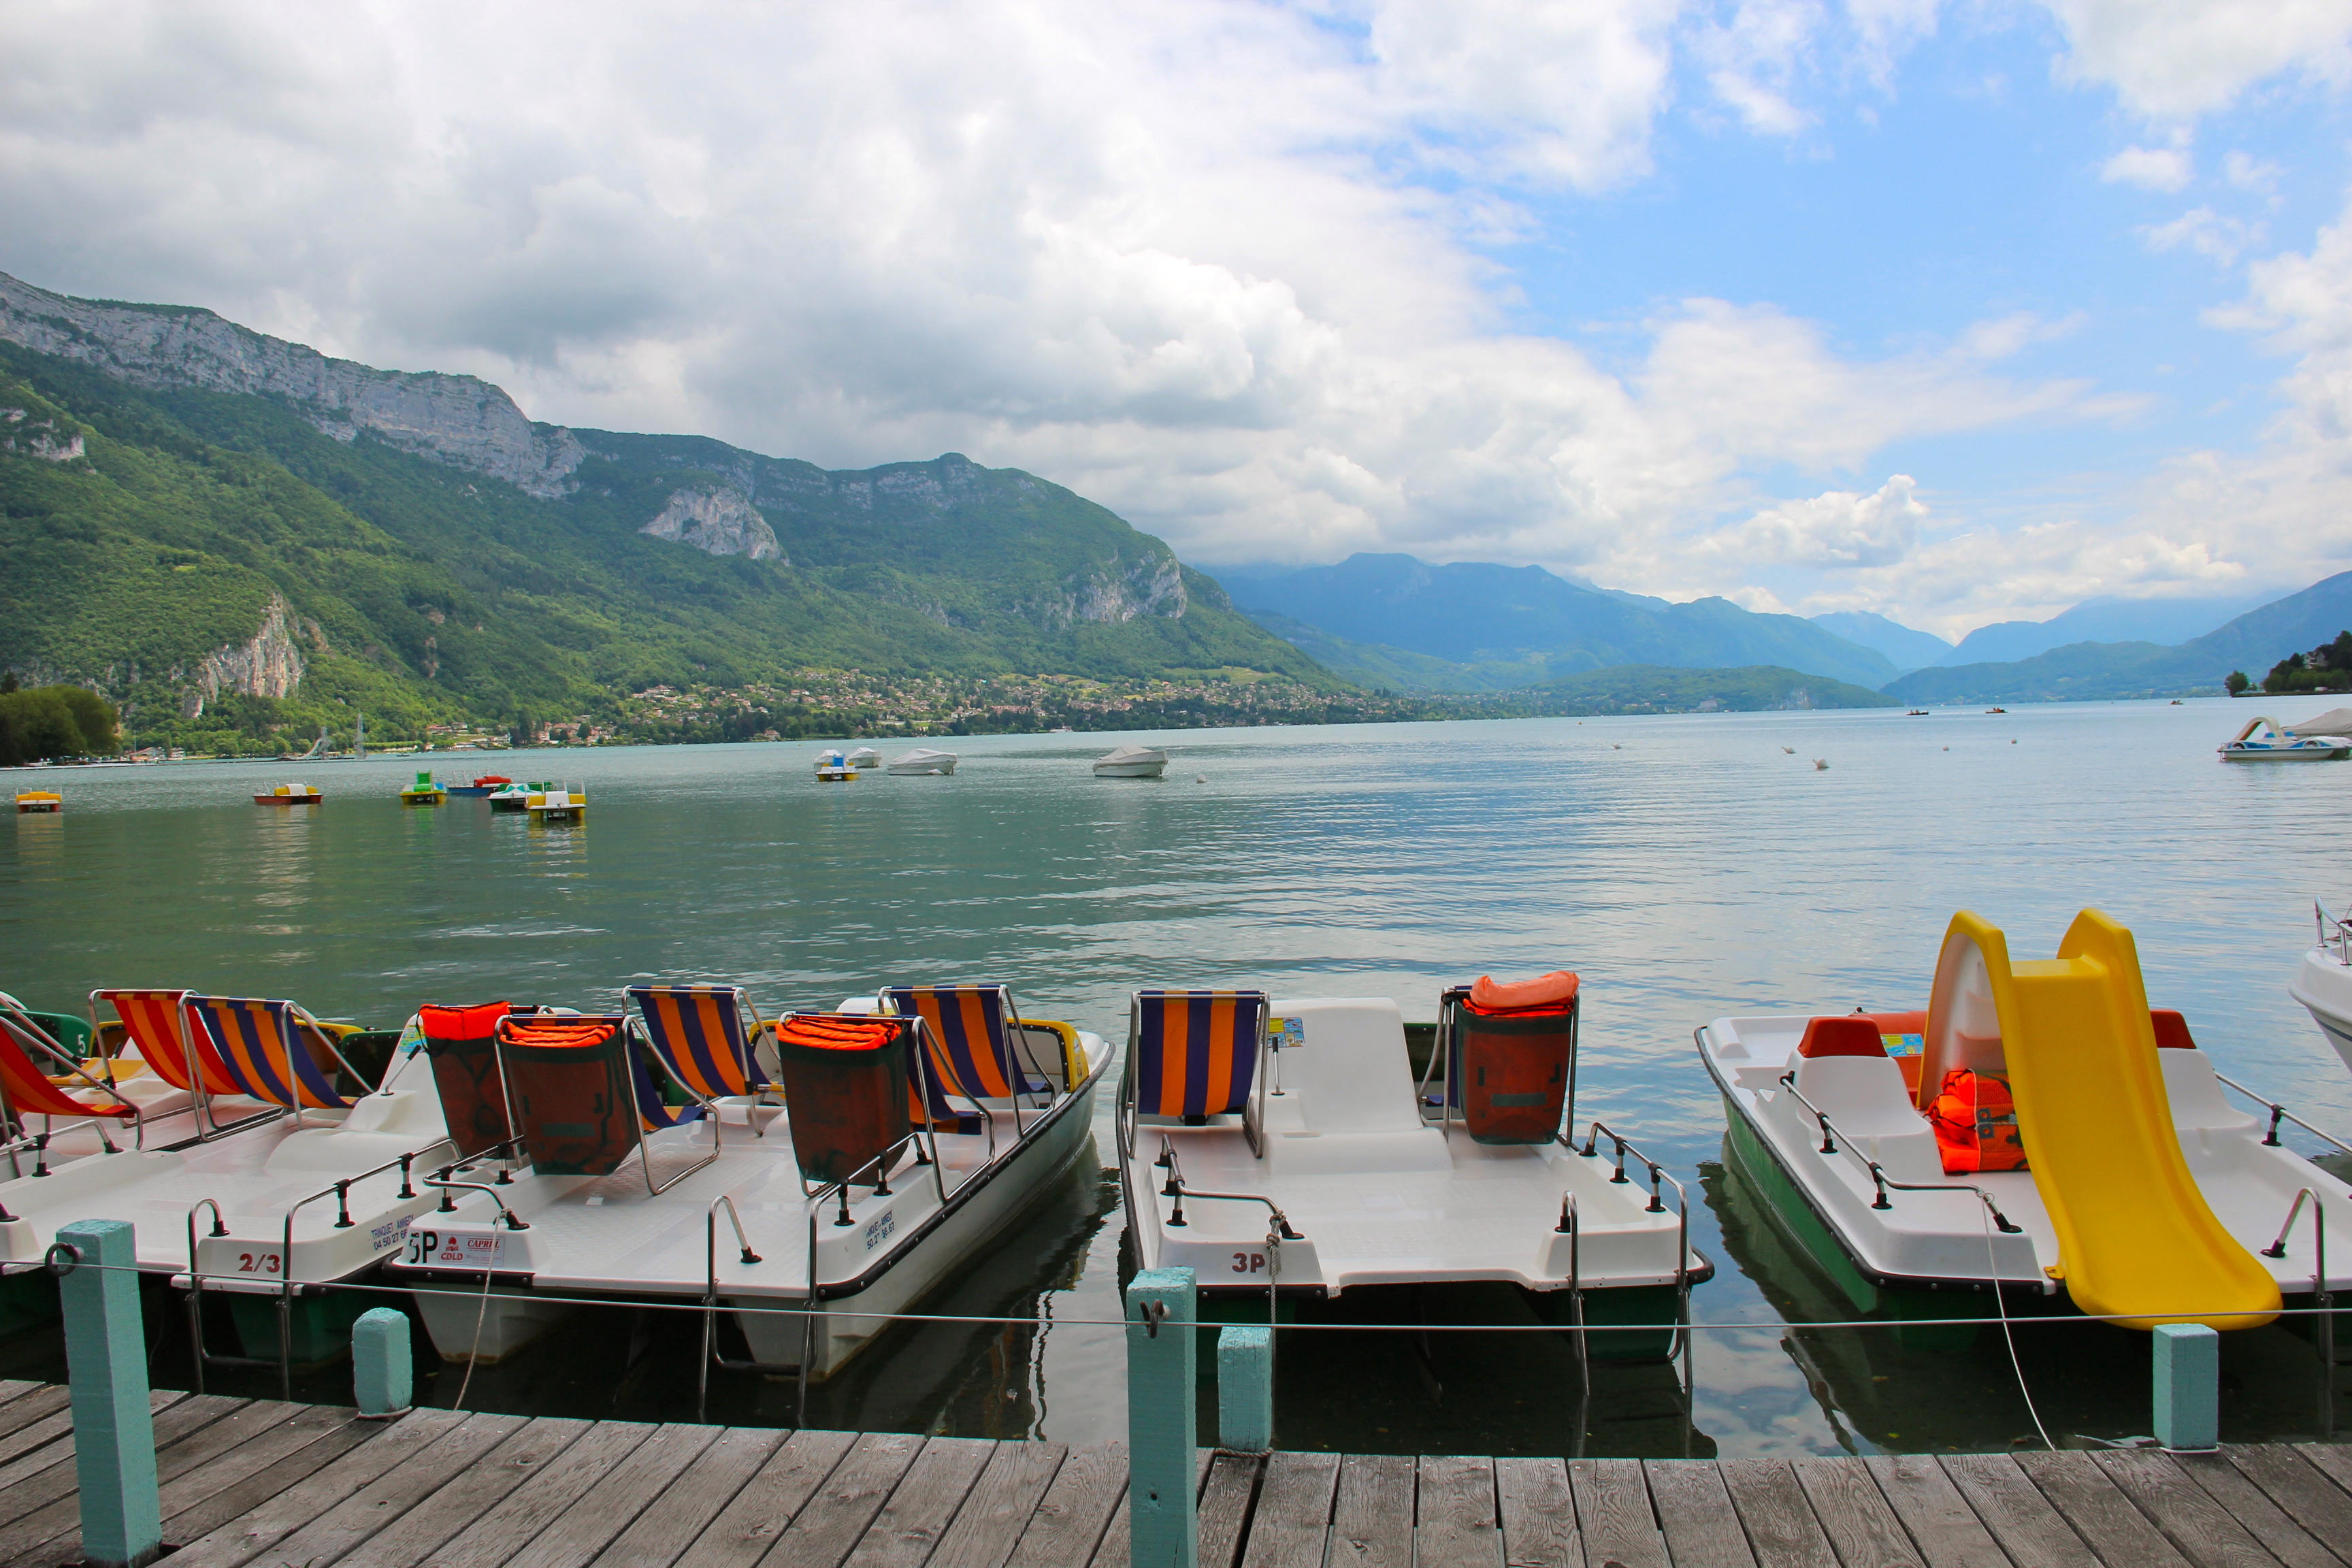 Can't get enough of those Lake Annecy views!